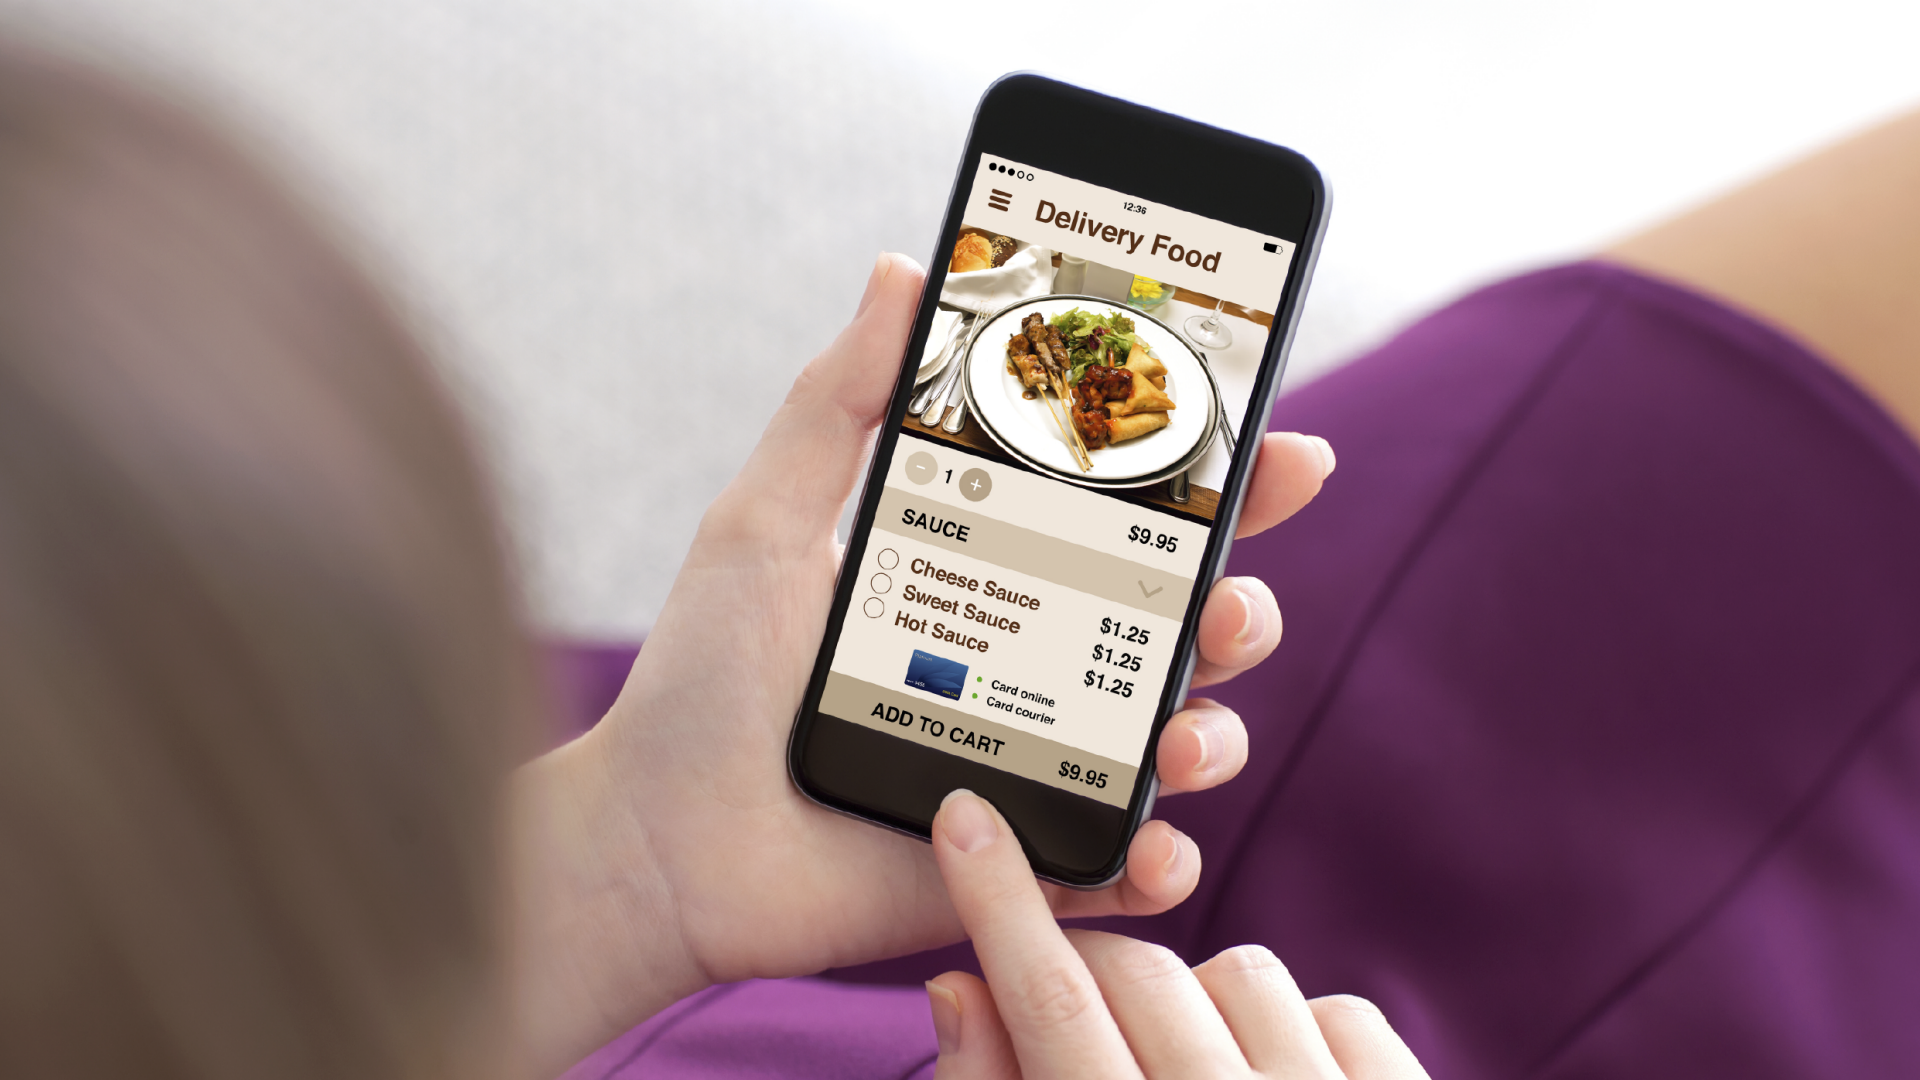 Delivery food app smartphone